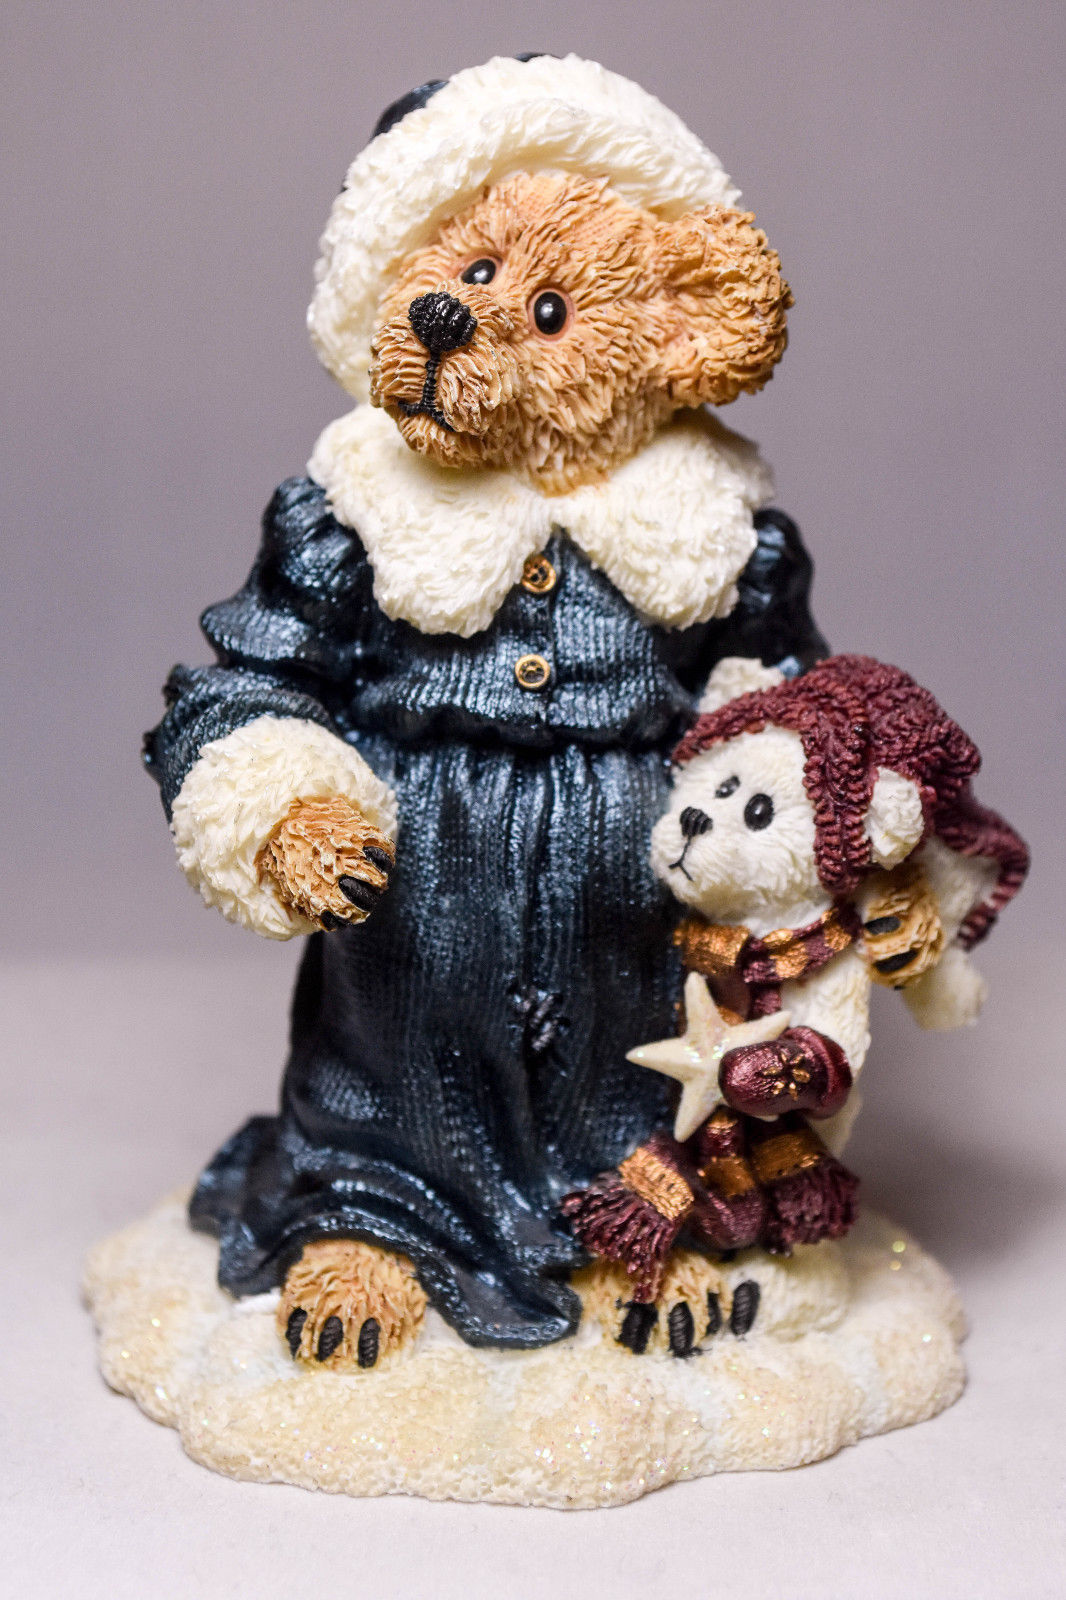 Primary image for Boyds Bears: Genevieve Berriman With Brady - Style #22837 - Catch A Falling Star